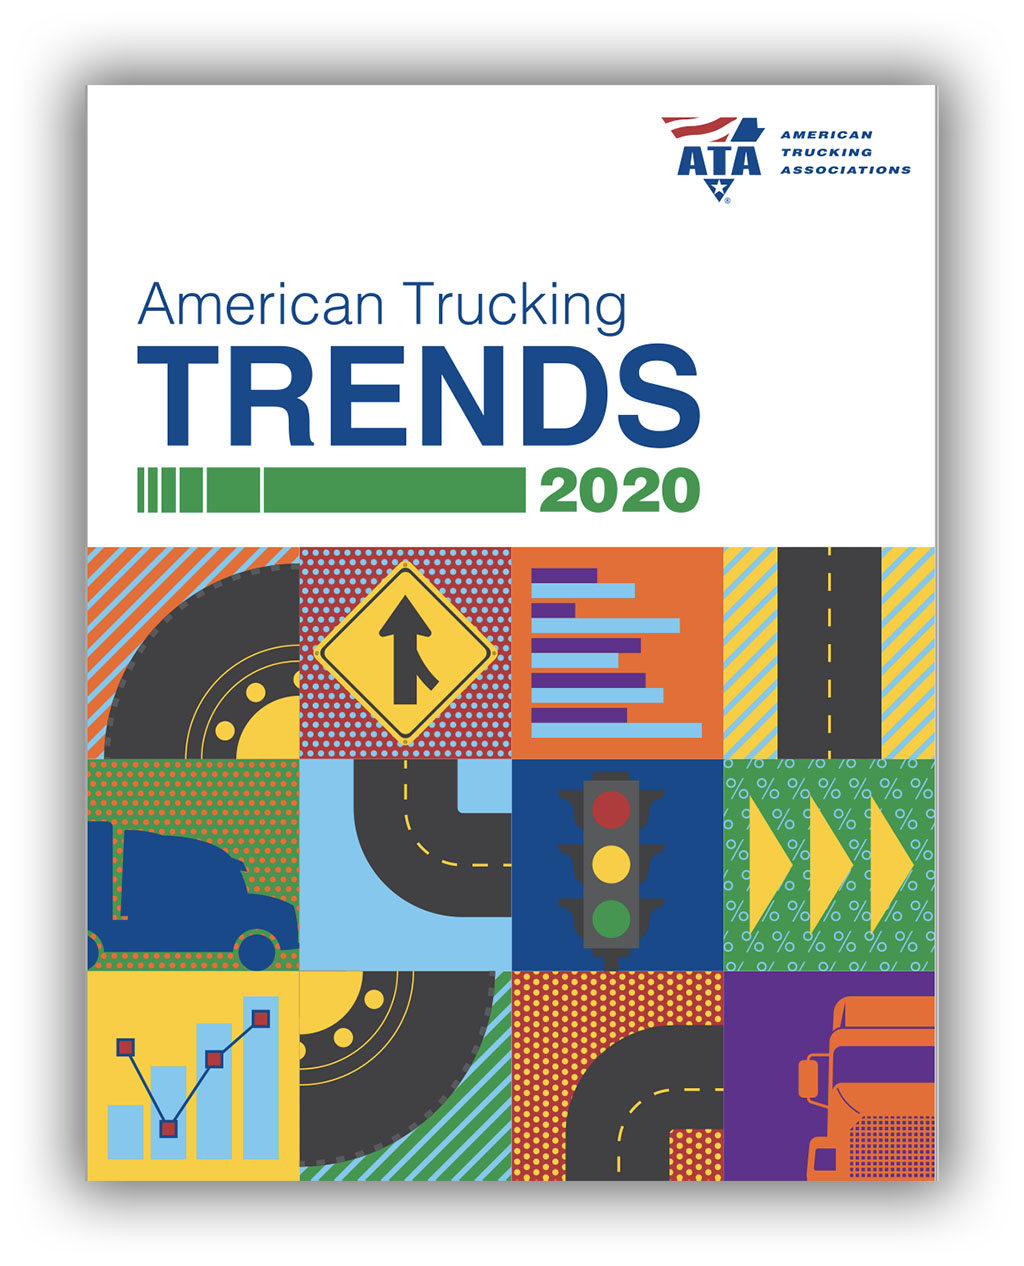 ATA American Trucking Trends 2020